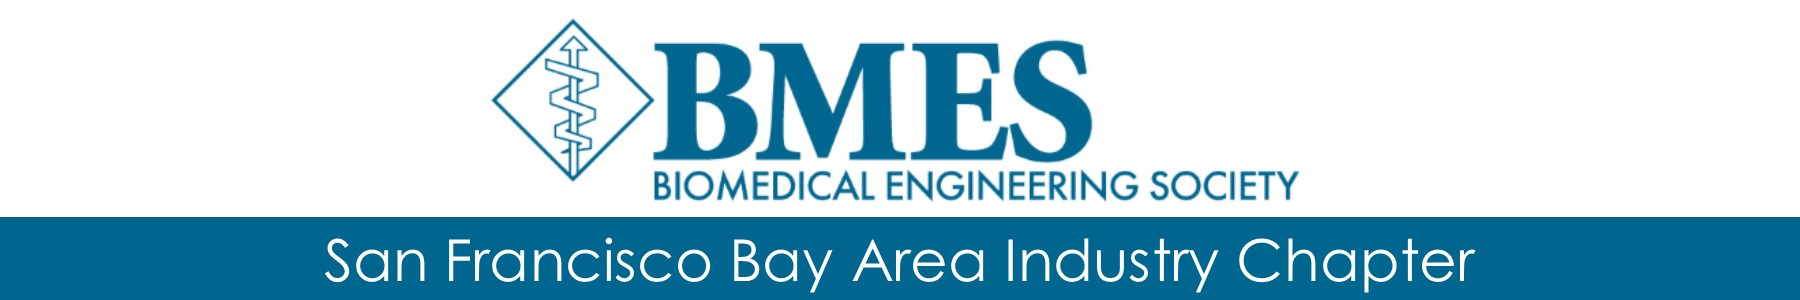 BMES-SF-Chapter-newsletter-header.jpg